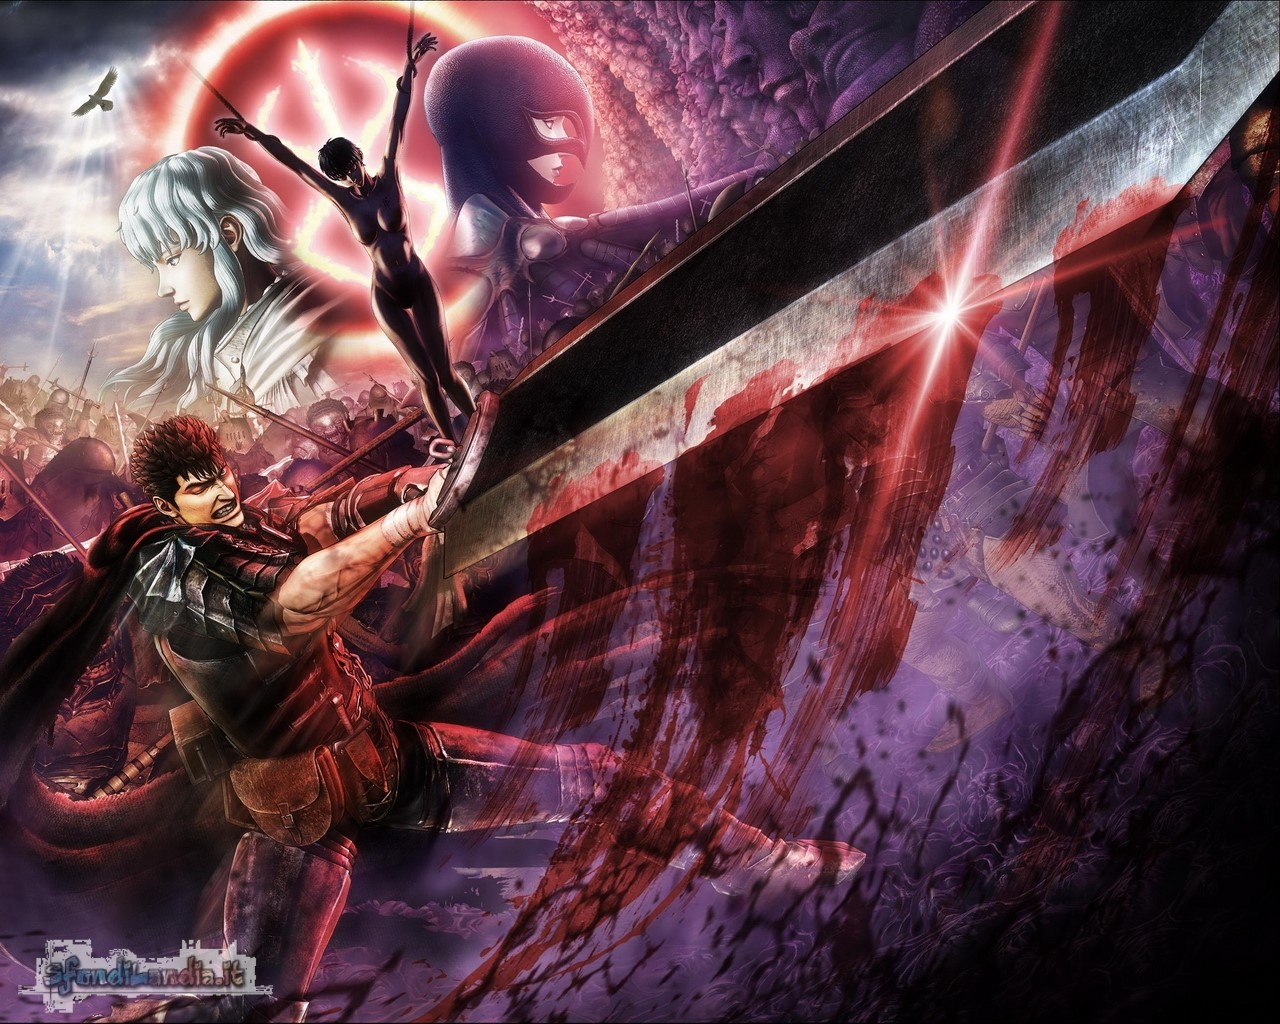 Berserk The Slayer